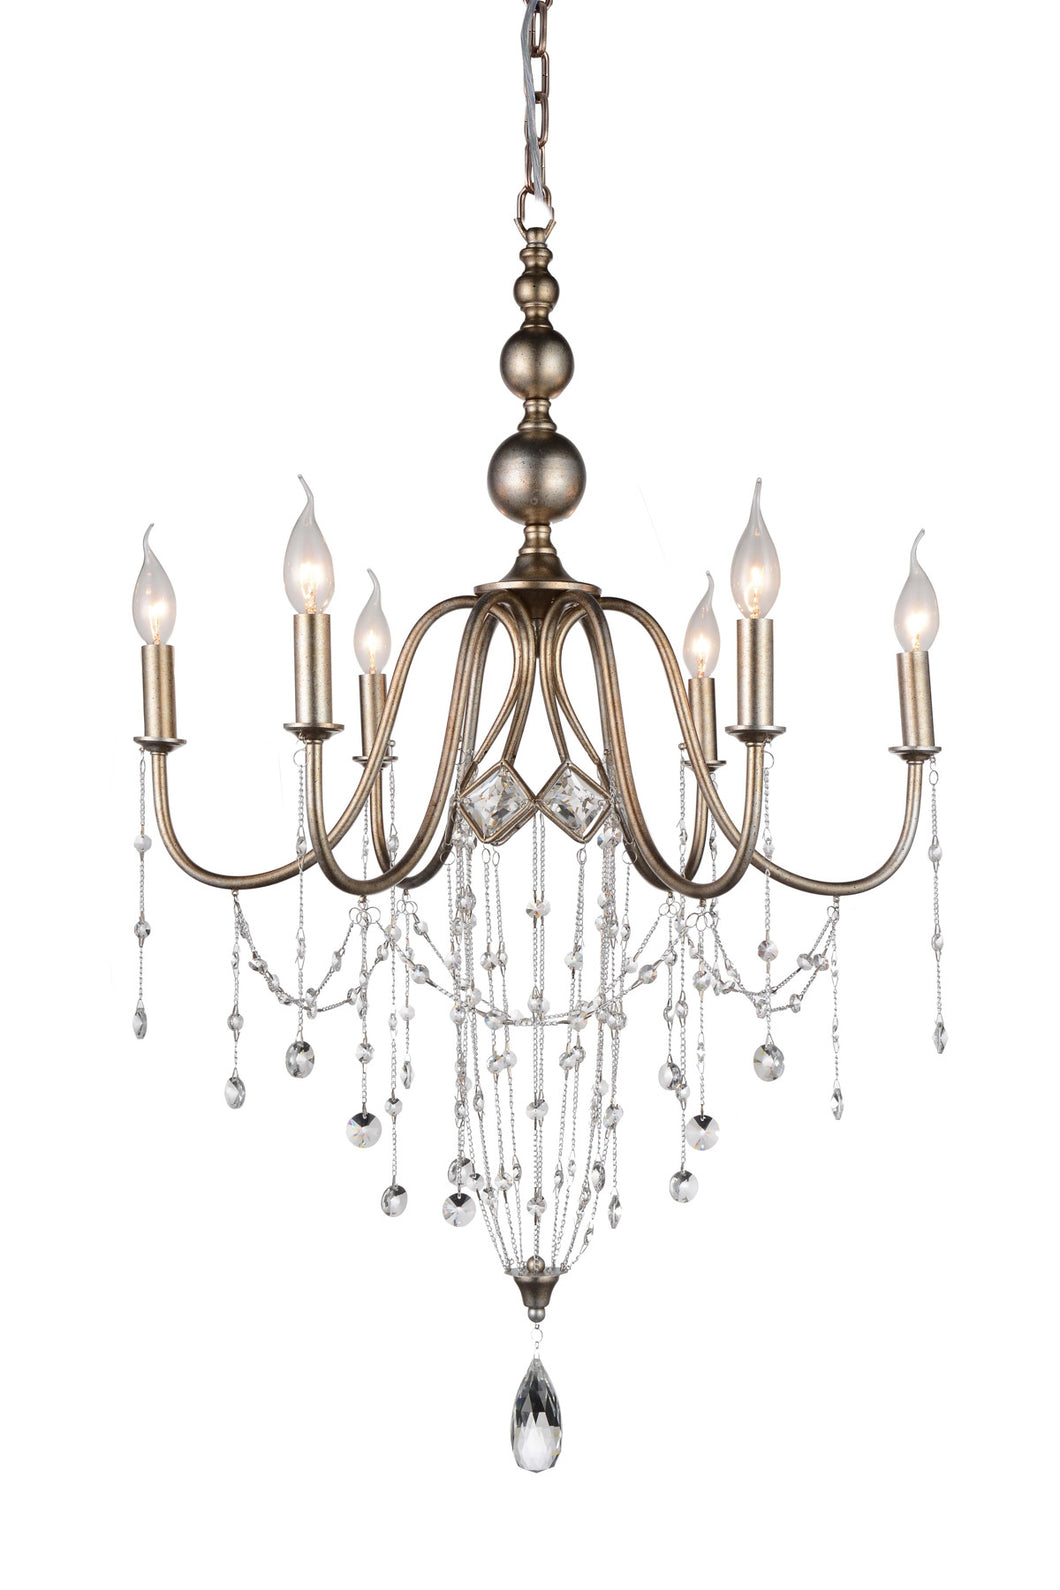 6 Light Up Chandelier with Speckled Nickel finish